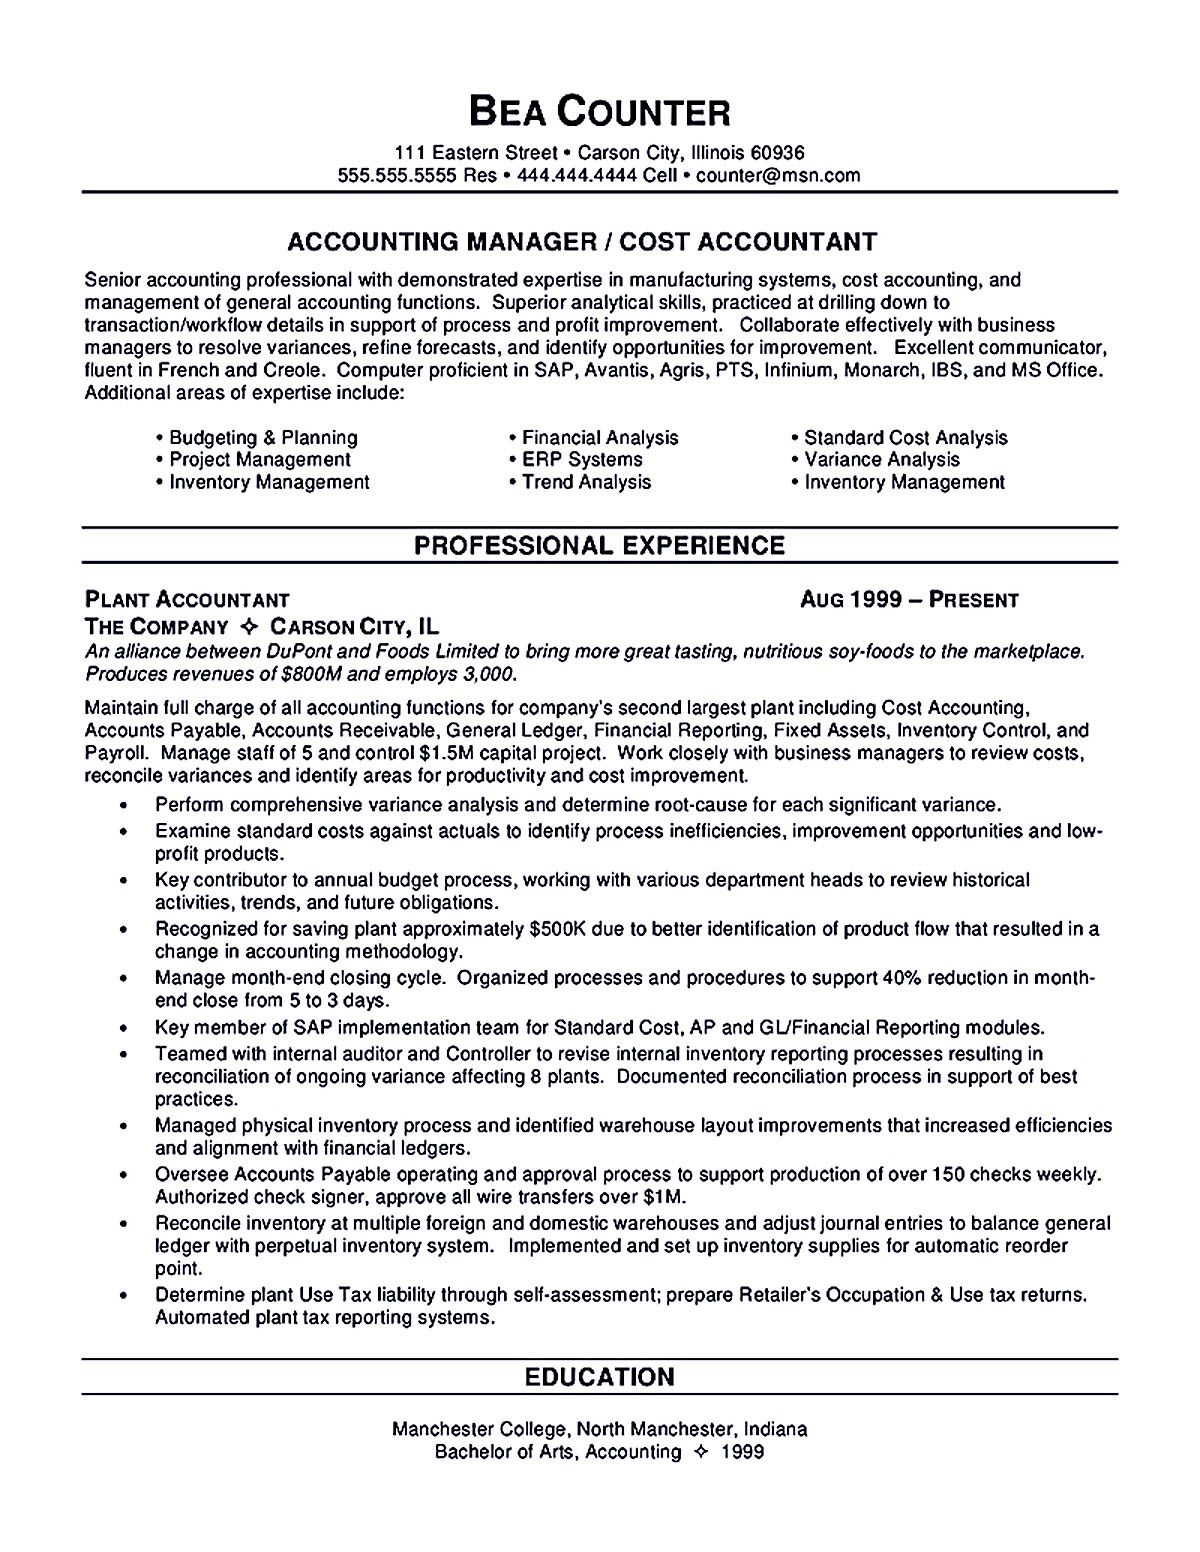 accounts payable resume template accountant resume template here helps you in boosting your career as an - Sample Accounts Payable Resume